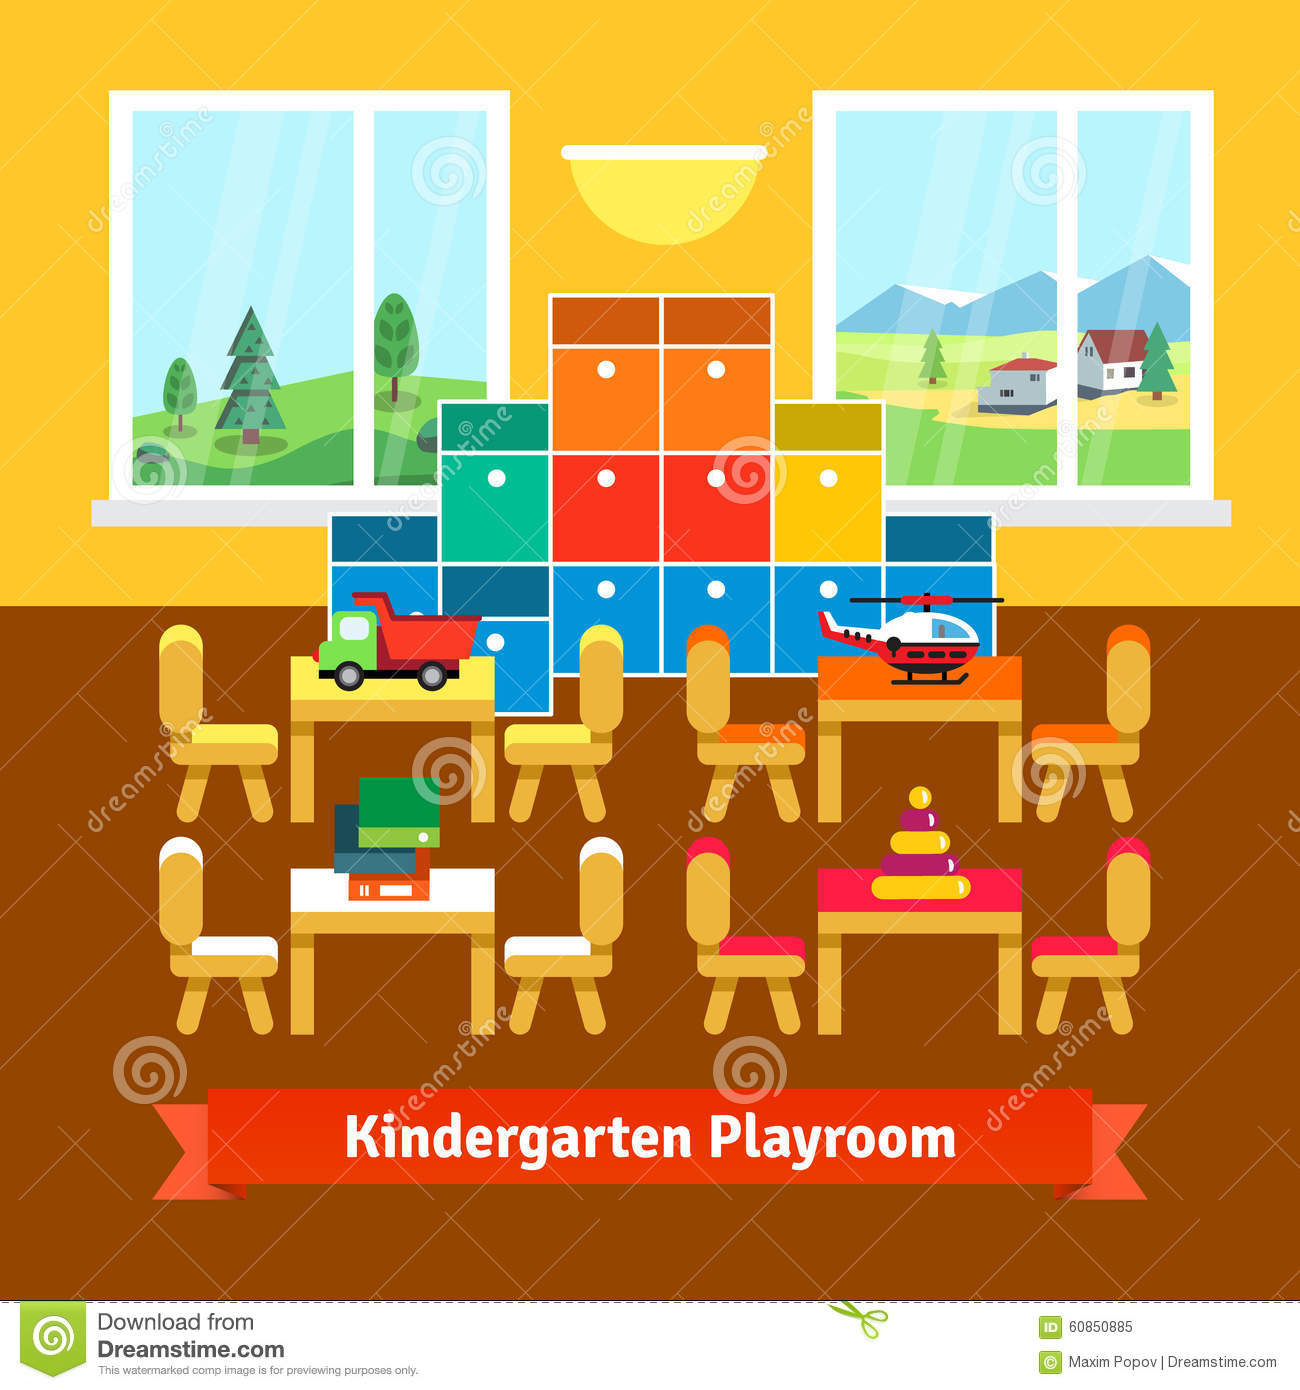 Kindergarten Playroom Classroom Stock Vector Image 60850885